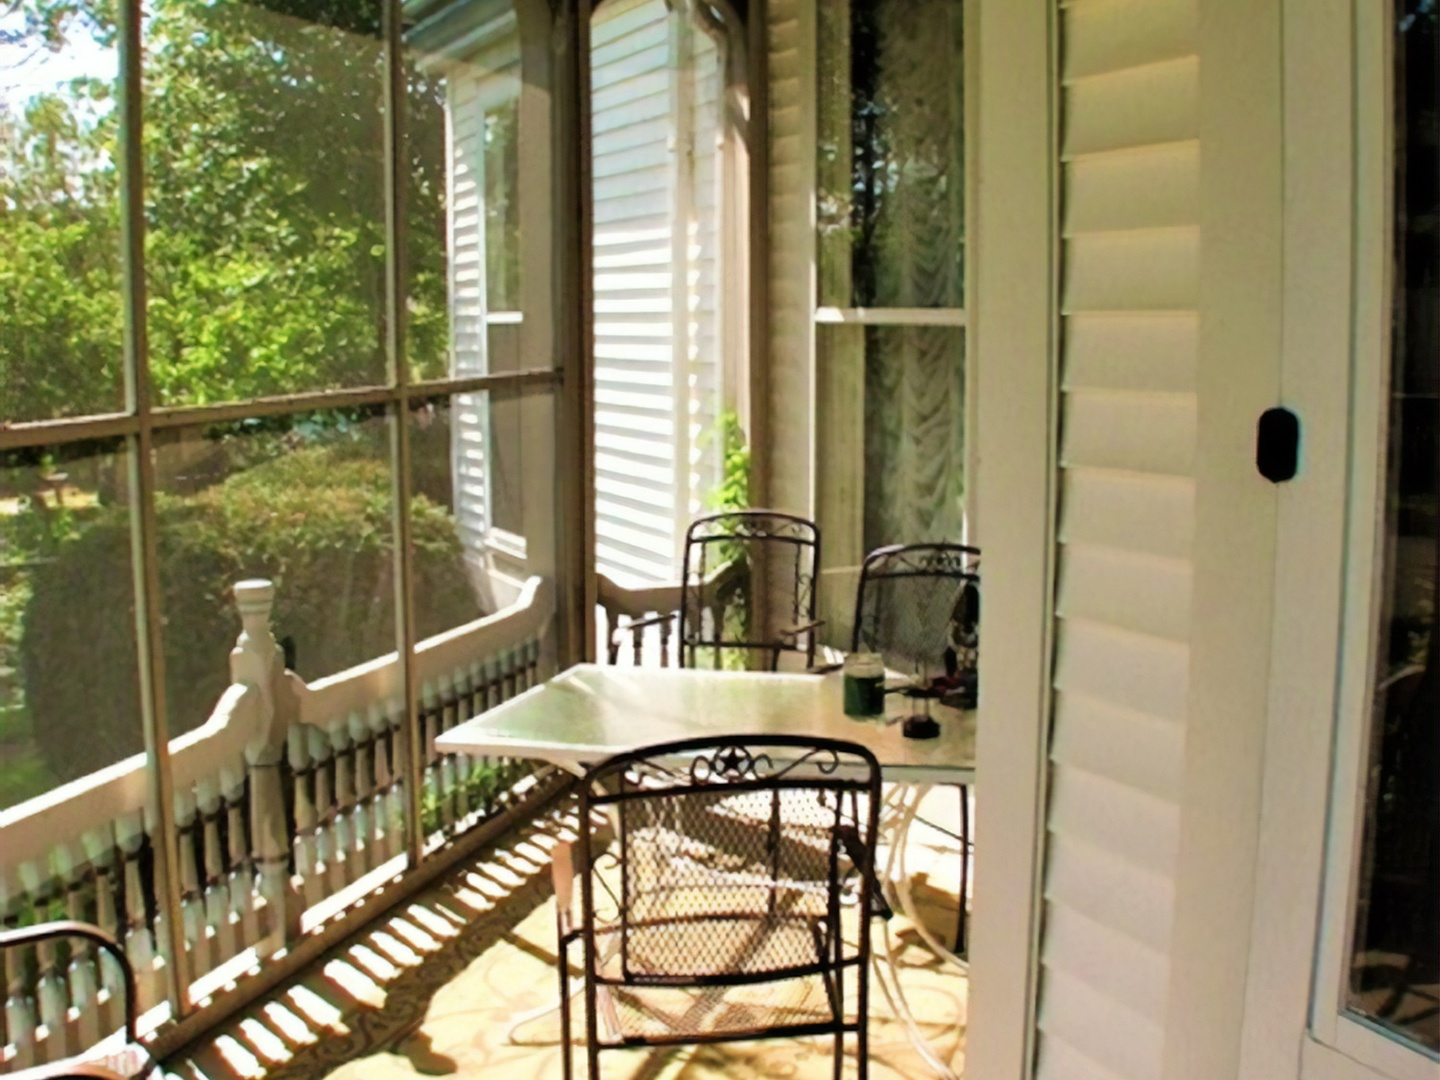 A dining room table in front of a window at Herrold on Hill Bed and Breakfast.